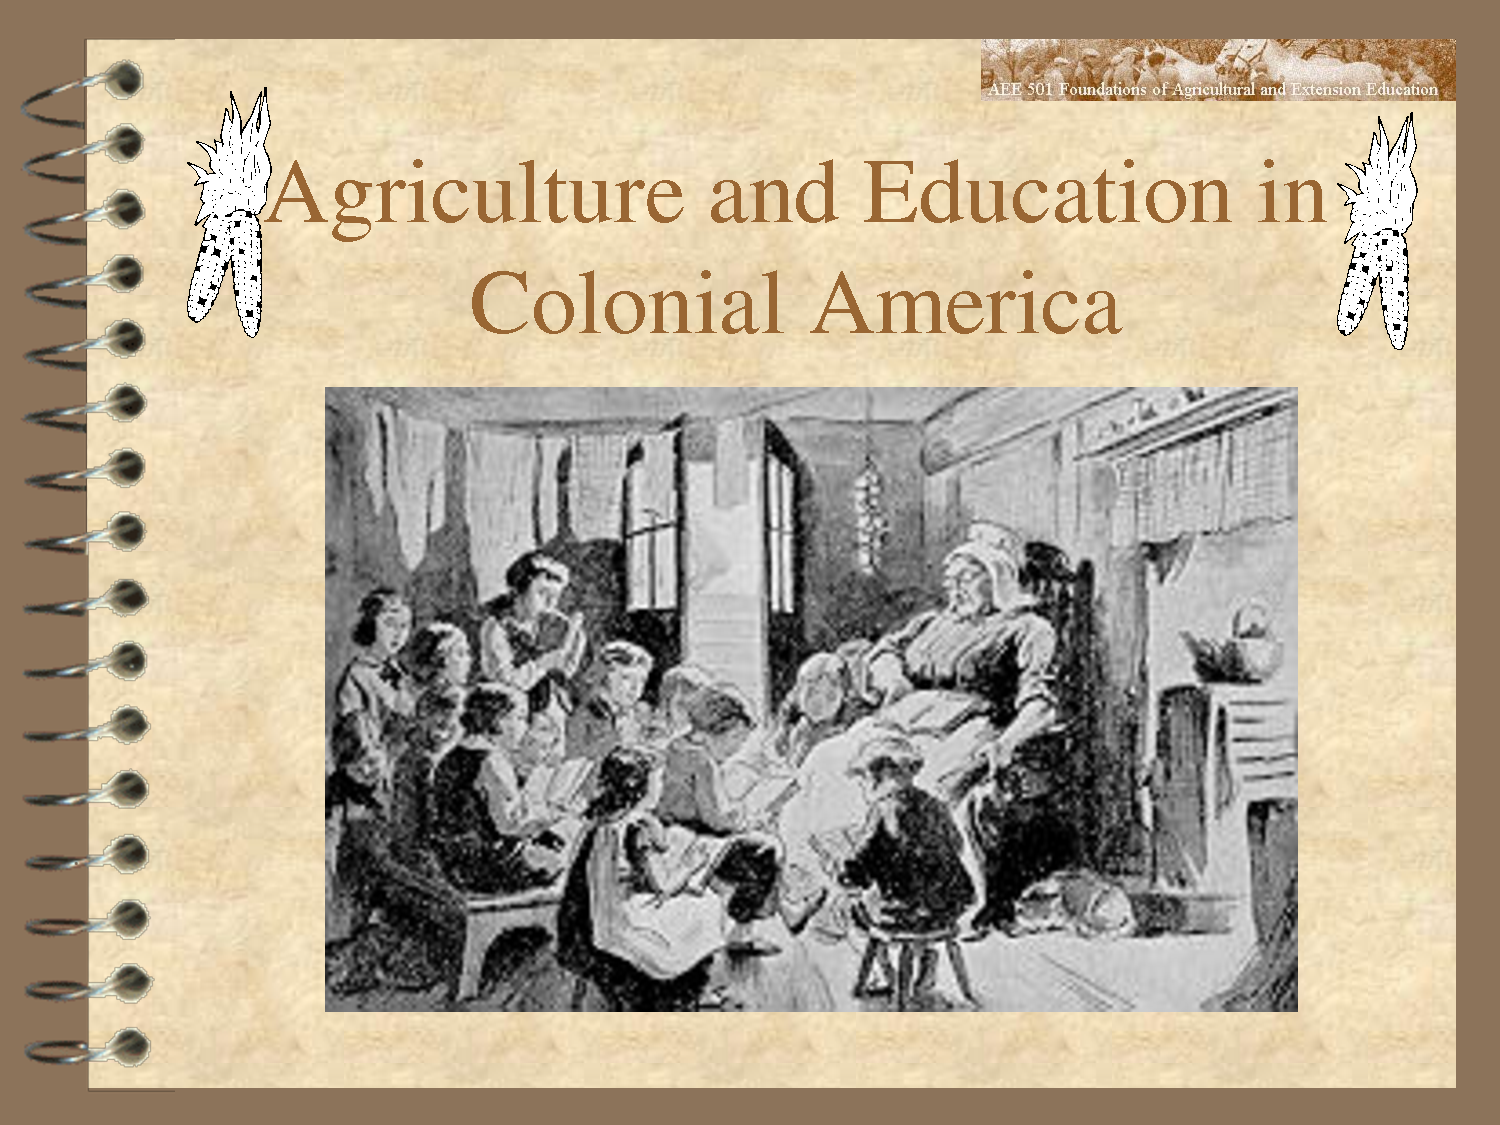 Colonial Education | Agriculture and Education in Colonial America